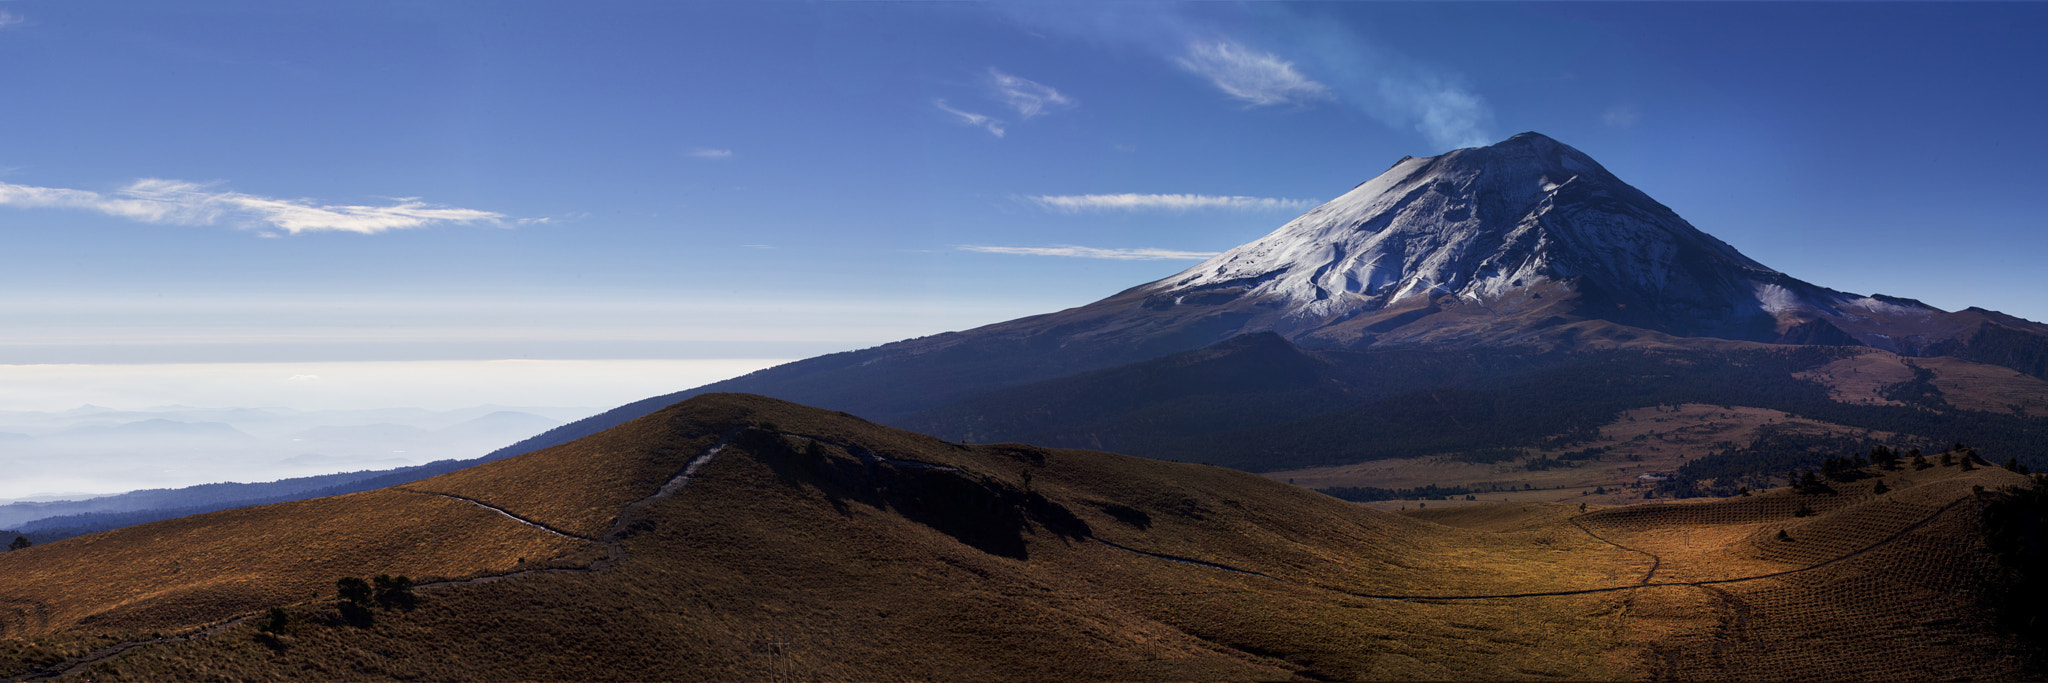 Photograph Popocatpetl view from the top by Cristobal Garciaferro Rubio on 500px